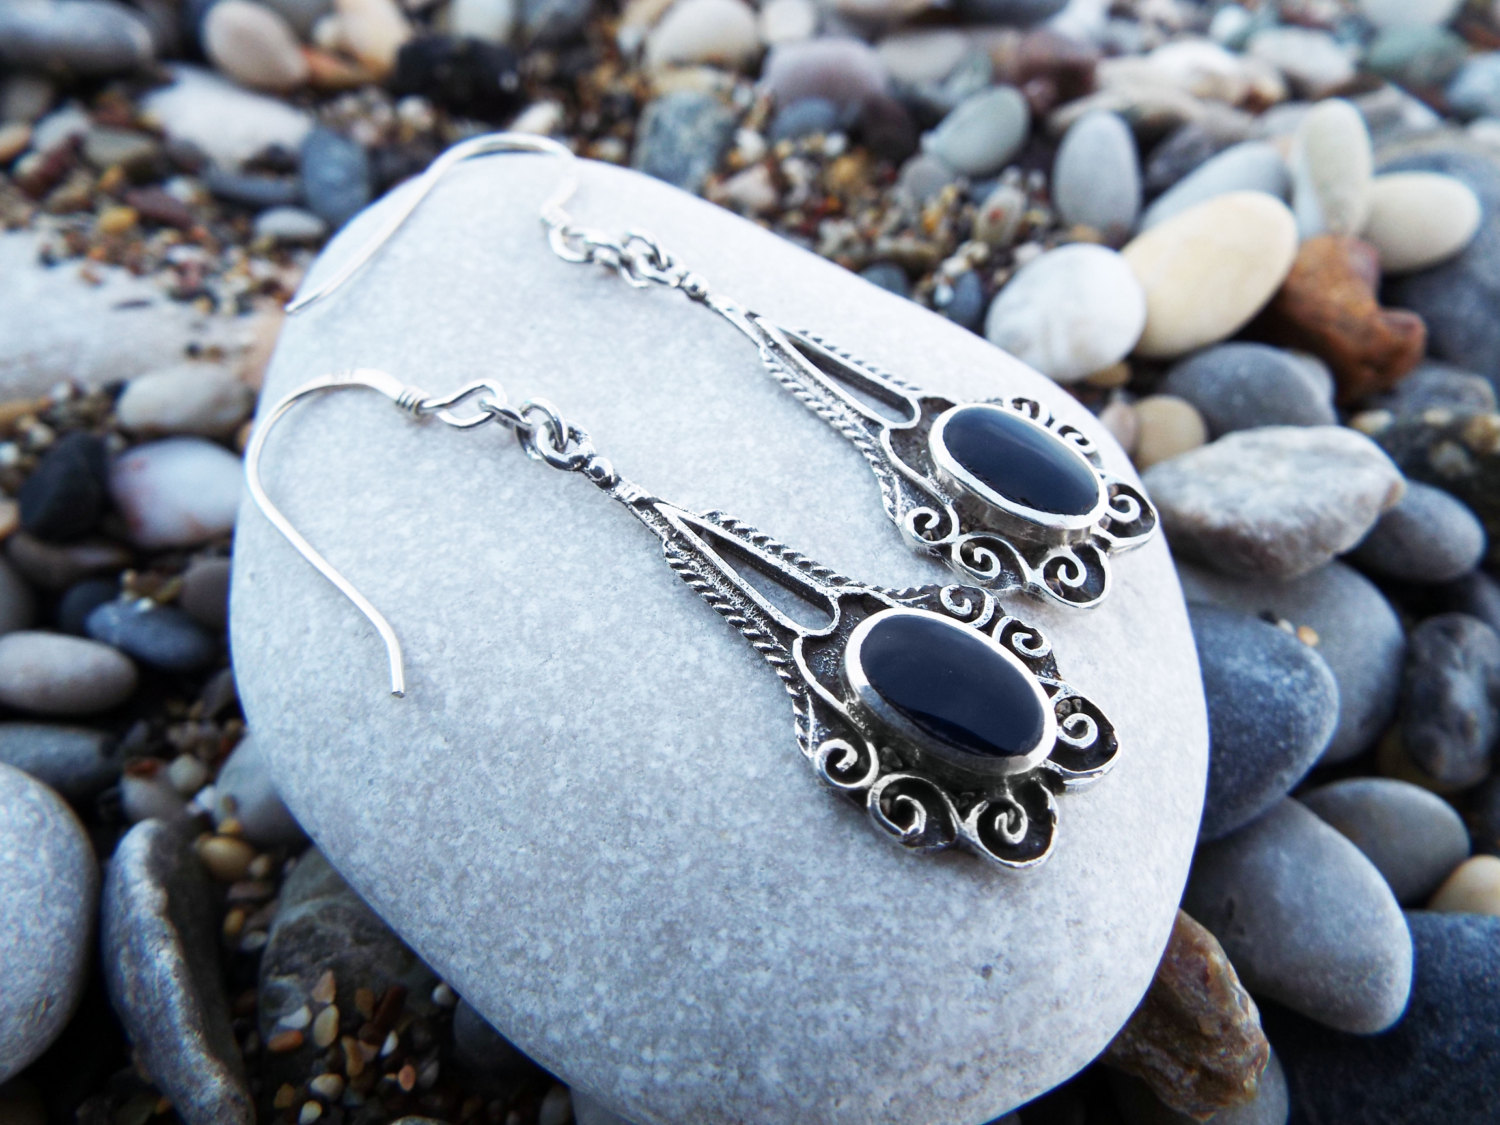 Earrings Onyx Gemstone Black Silver Handmade Sterling 925 Dangle Drop Jewelry Gothic Dark Antique Vintage